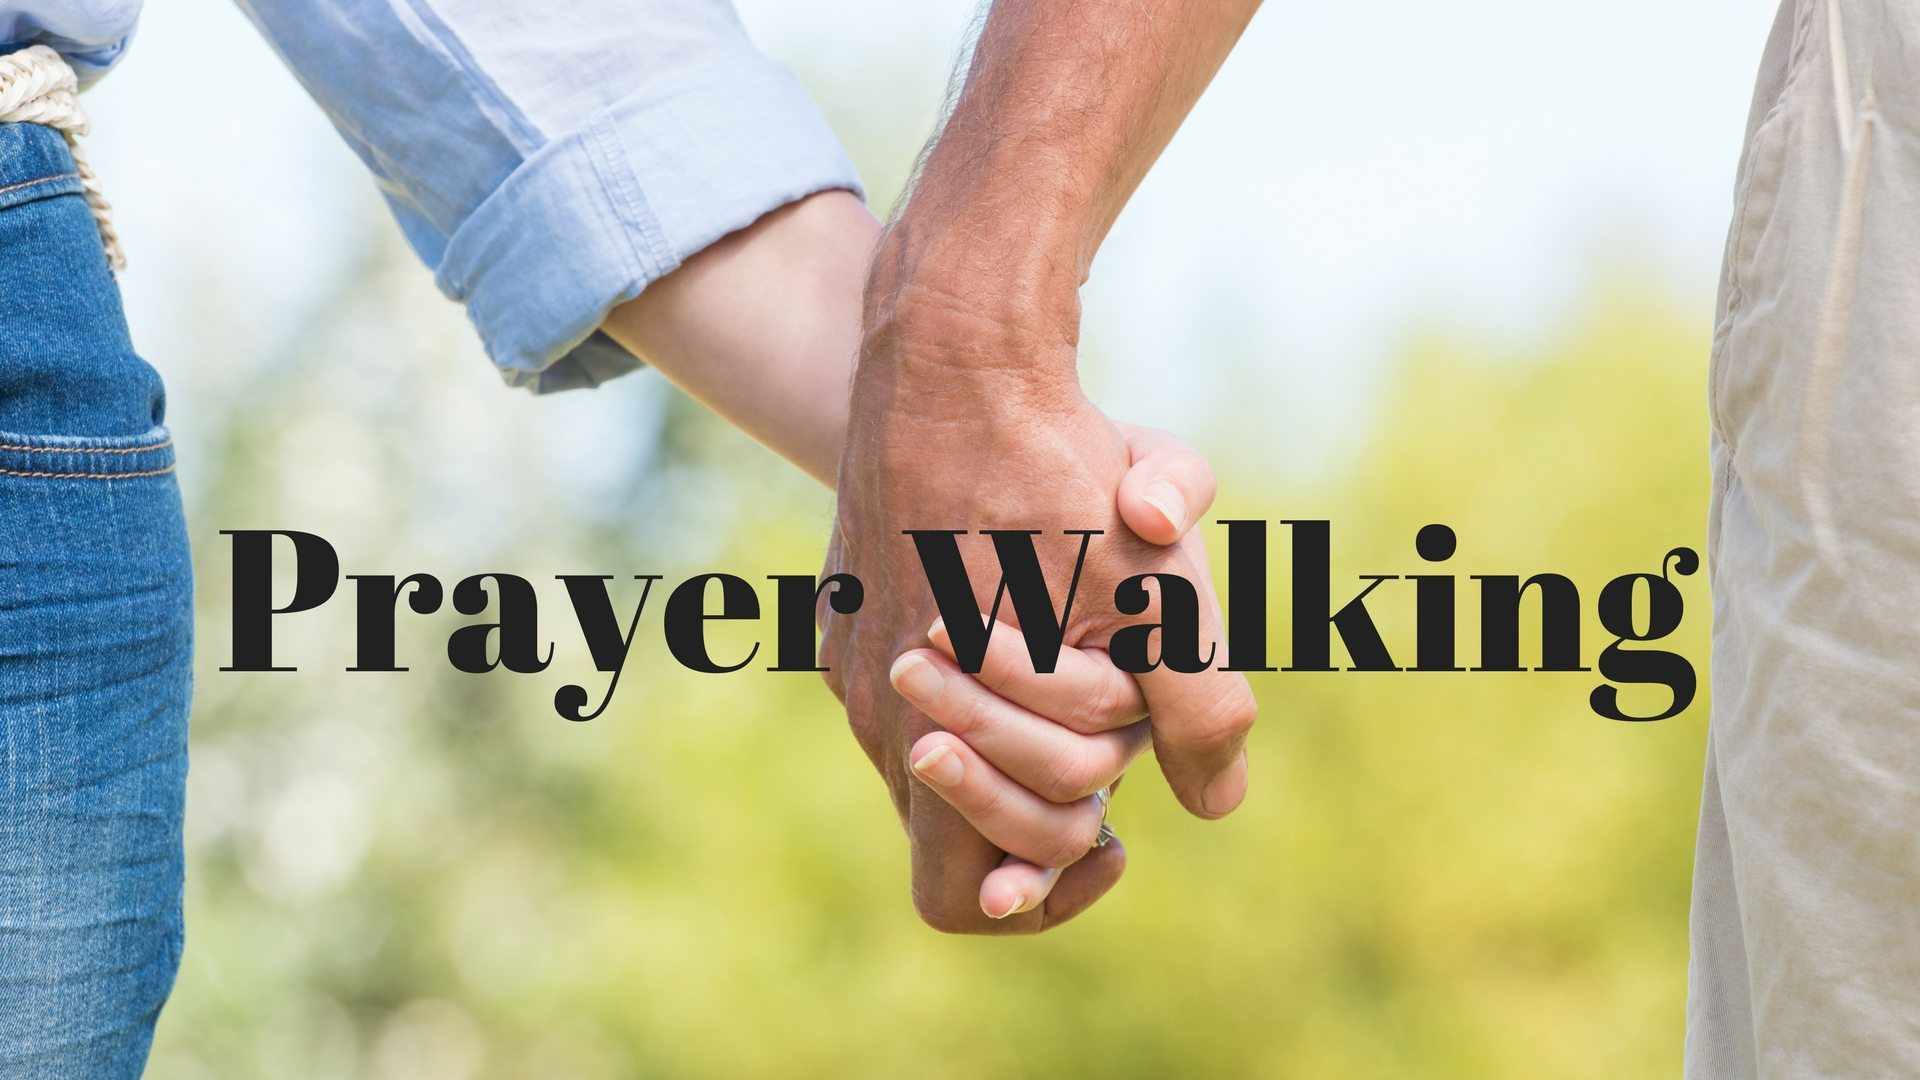 Prayer Walking - Canva - Adobe Stock